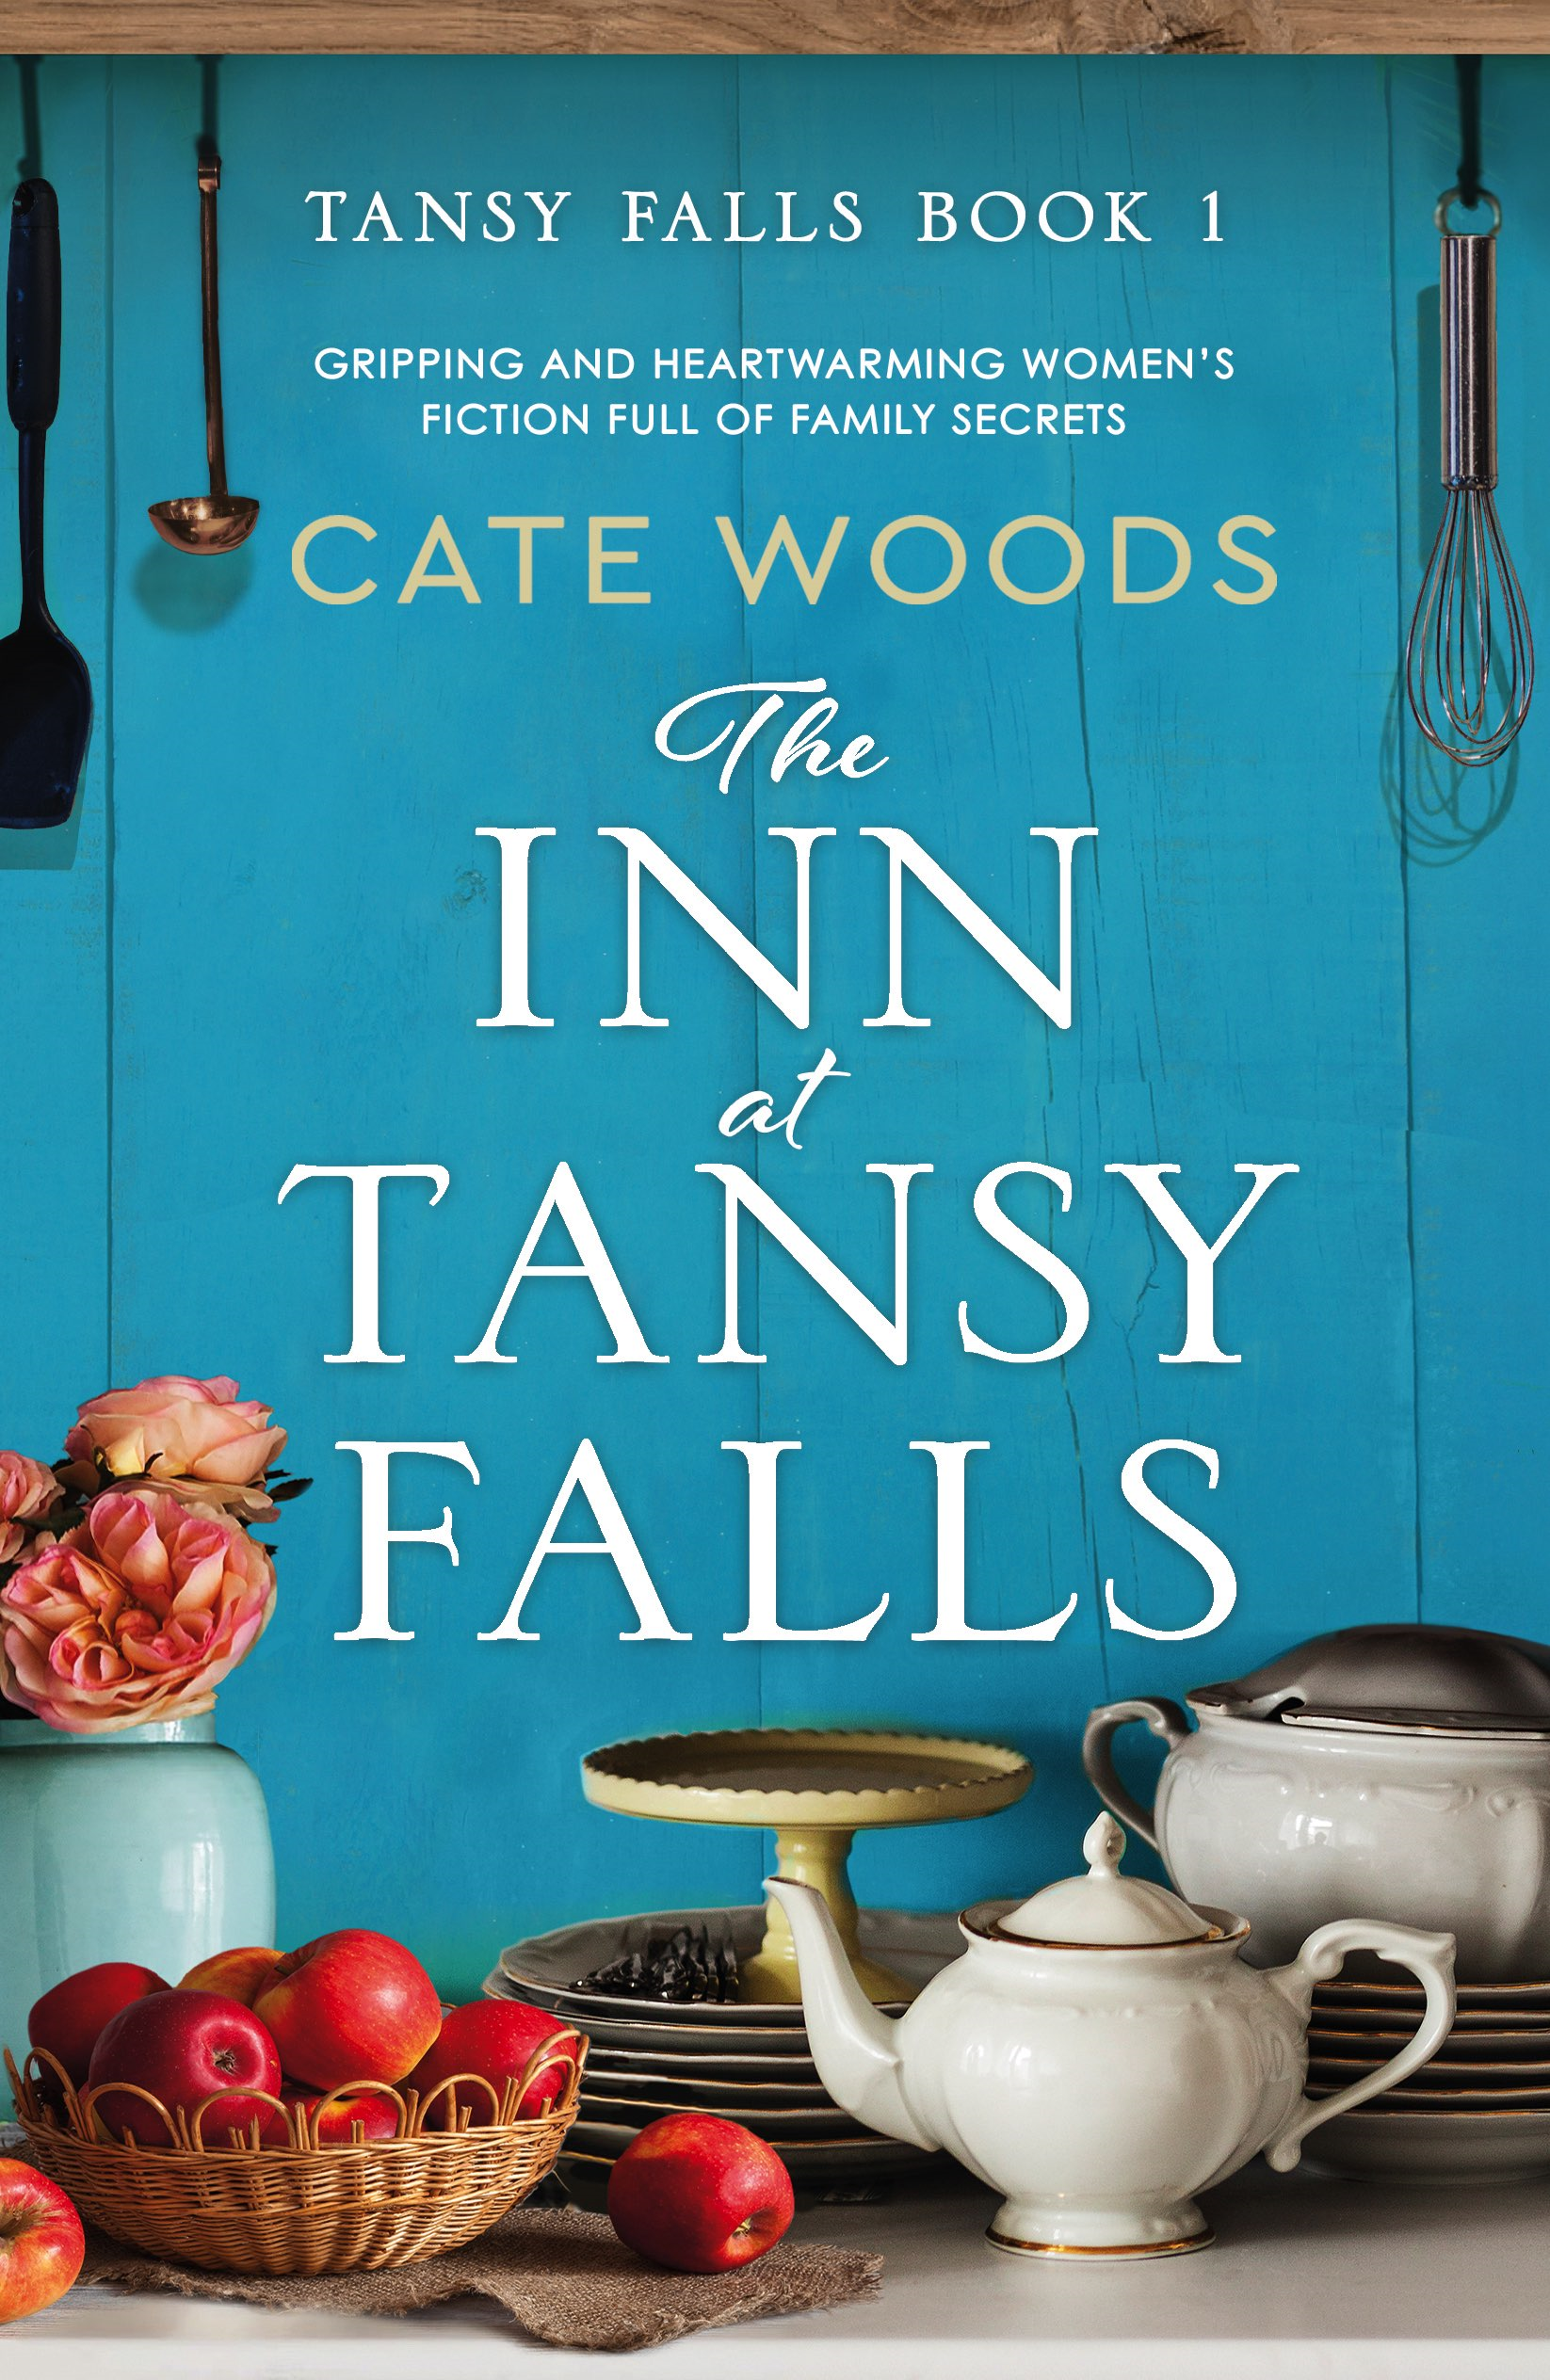 The Inn at Tansy Falls